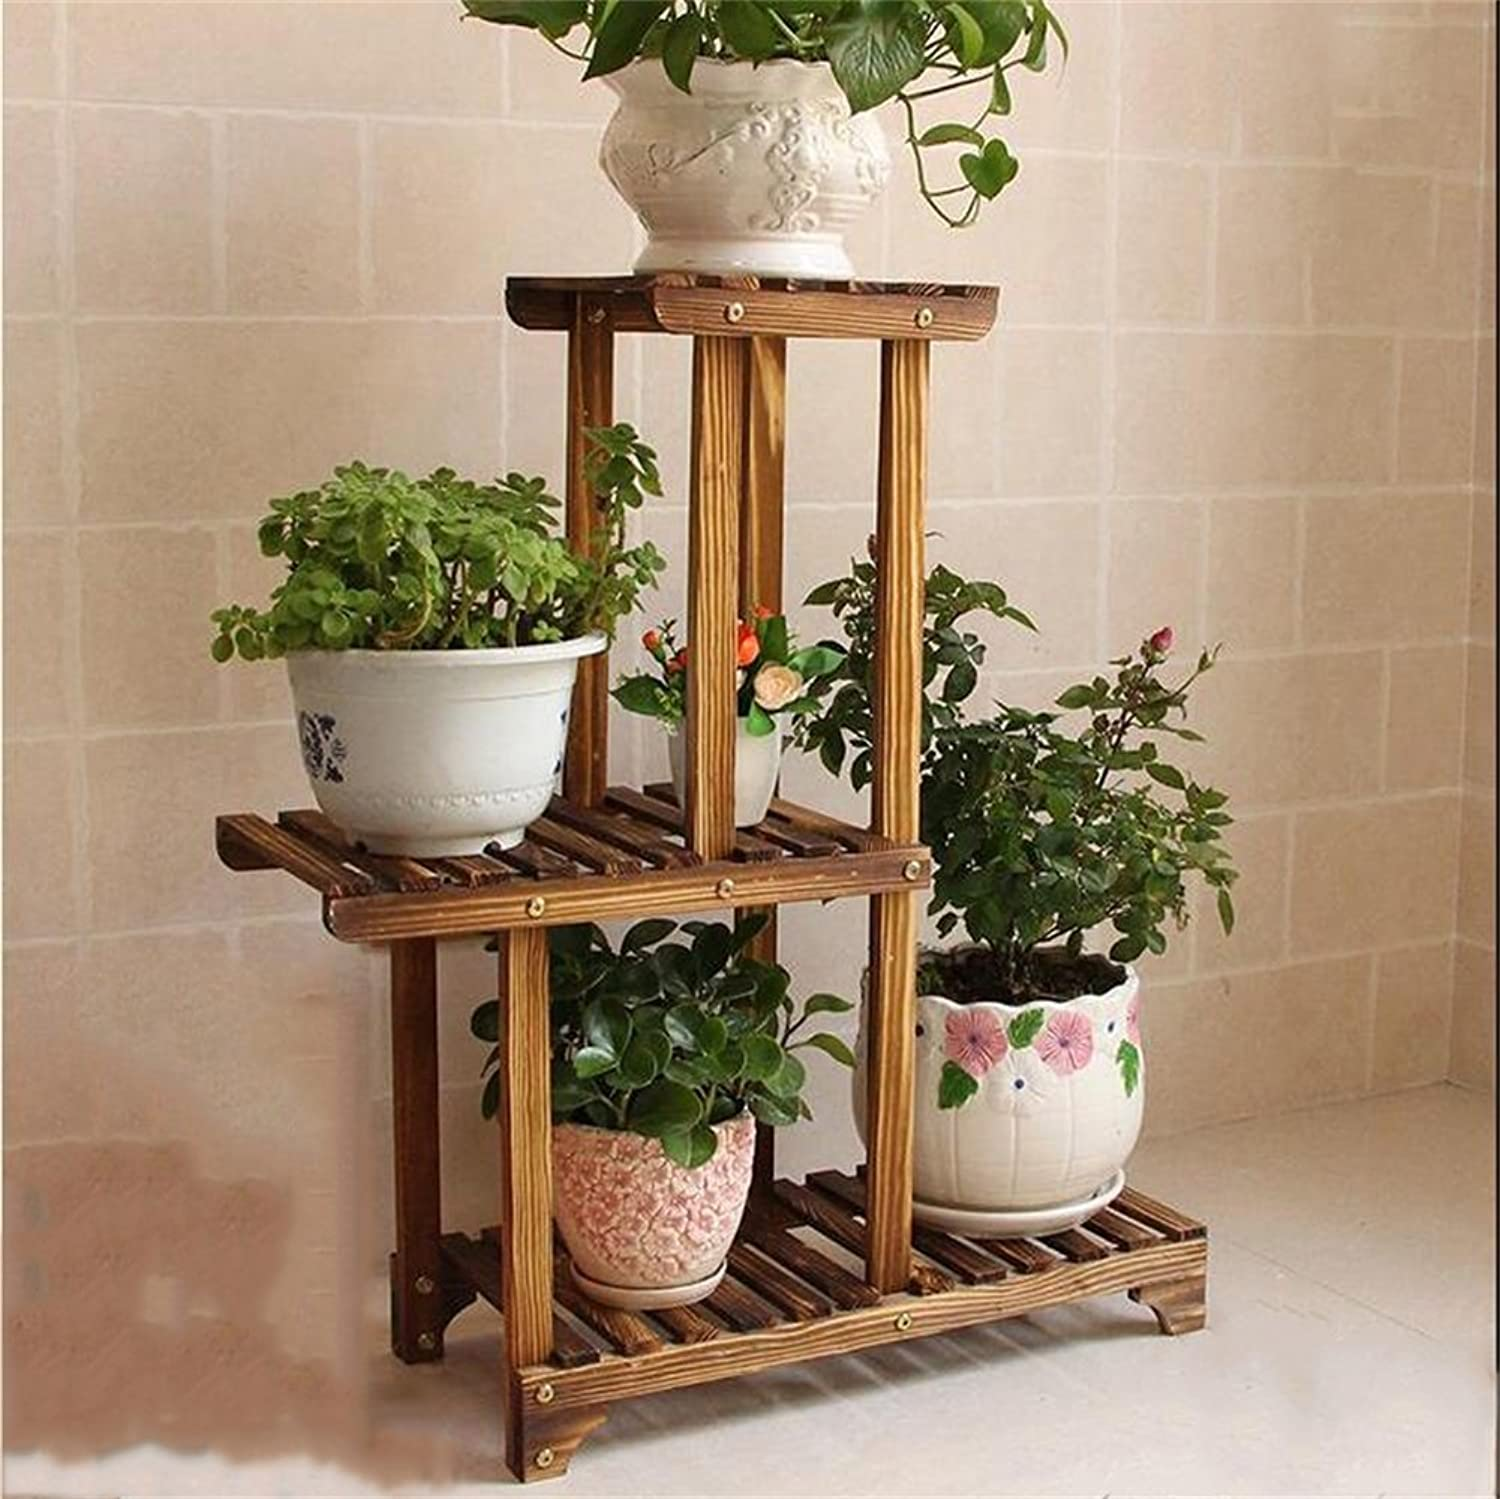 Plant European Wooden Flower Stand Multi-Layer Solid Wood Floor Pot Rack Green Shelf Simple Indoor Bonsai Balcony Frame Accessories